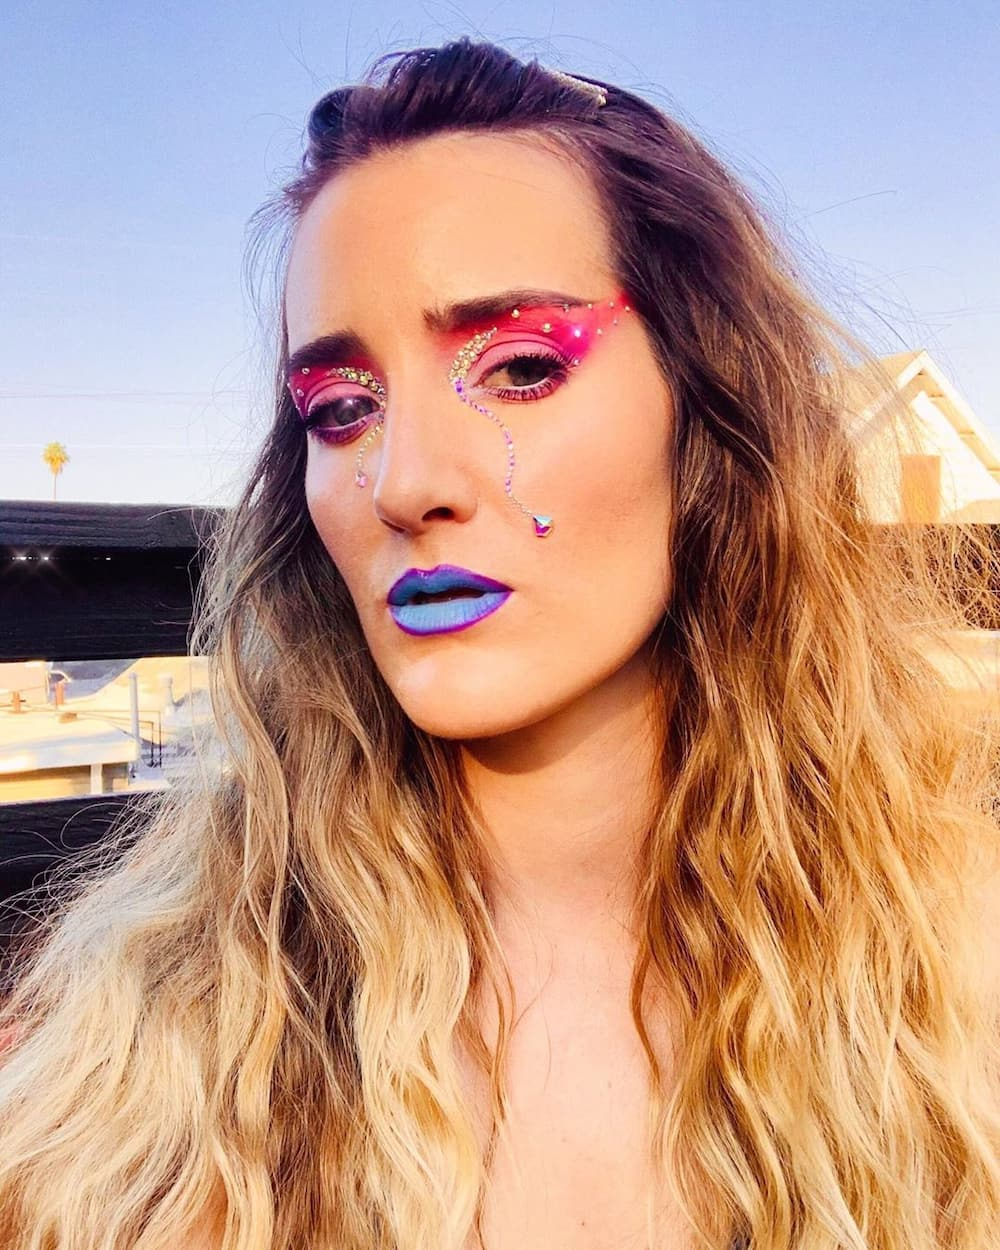 who is the most popular makeup artist on youtube?